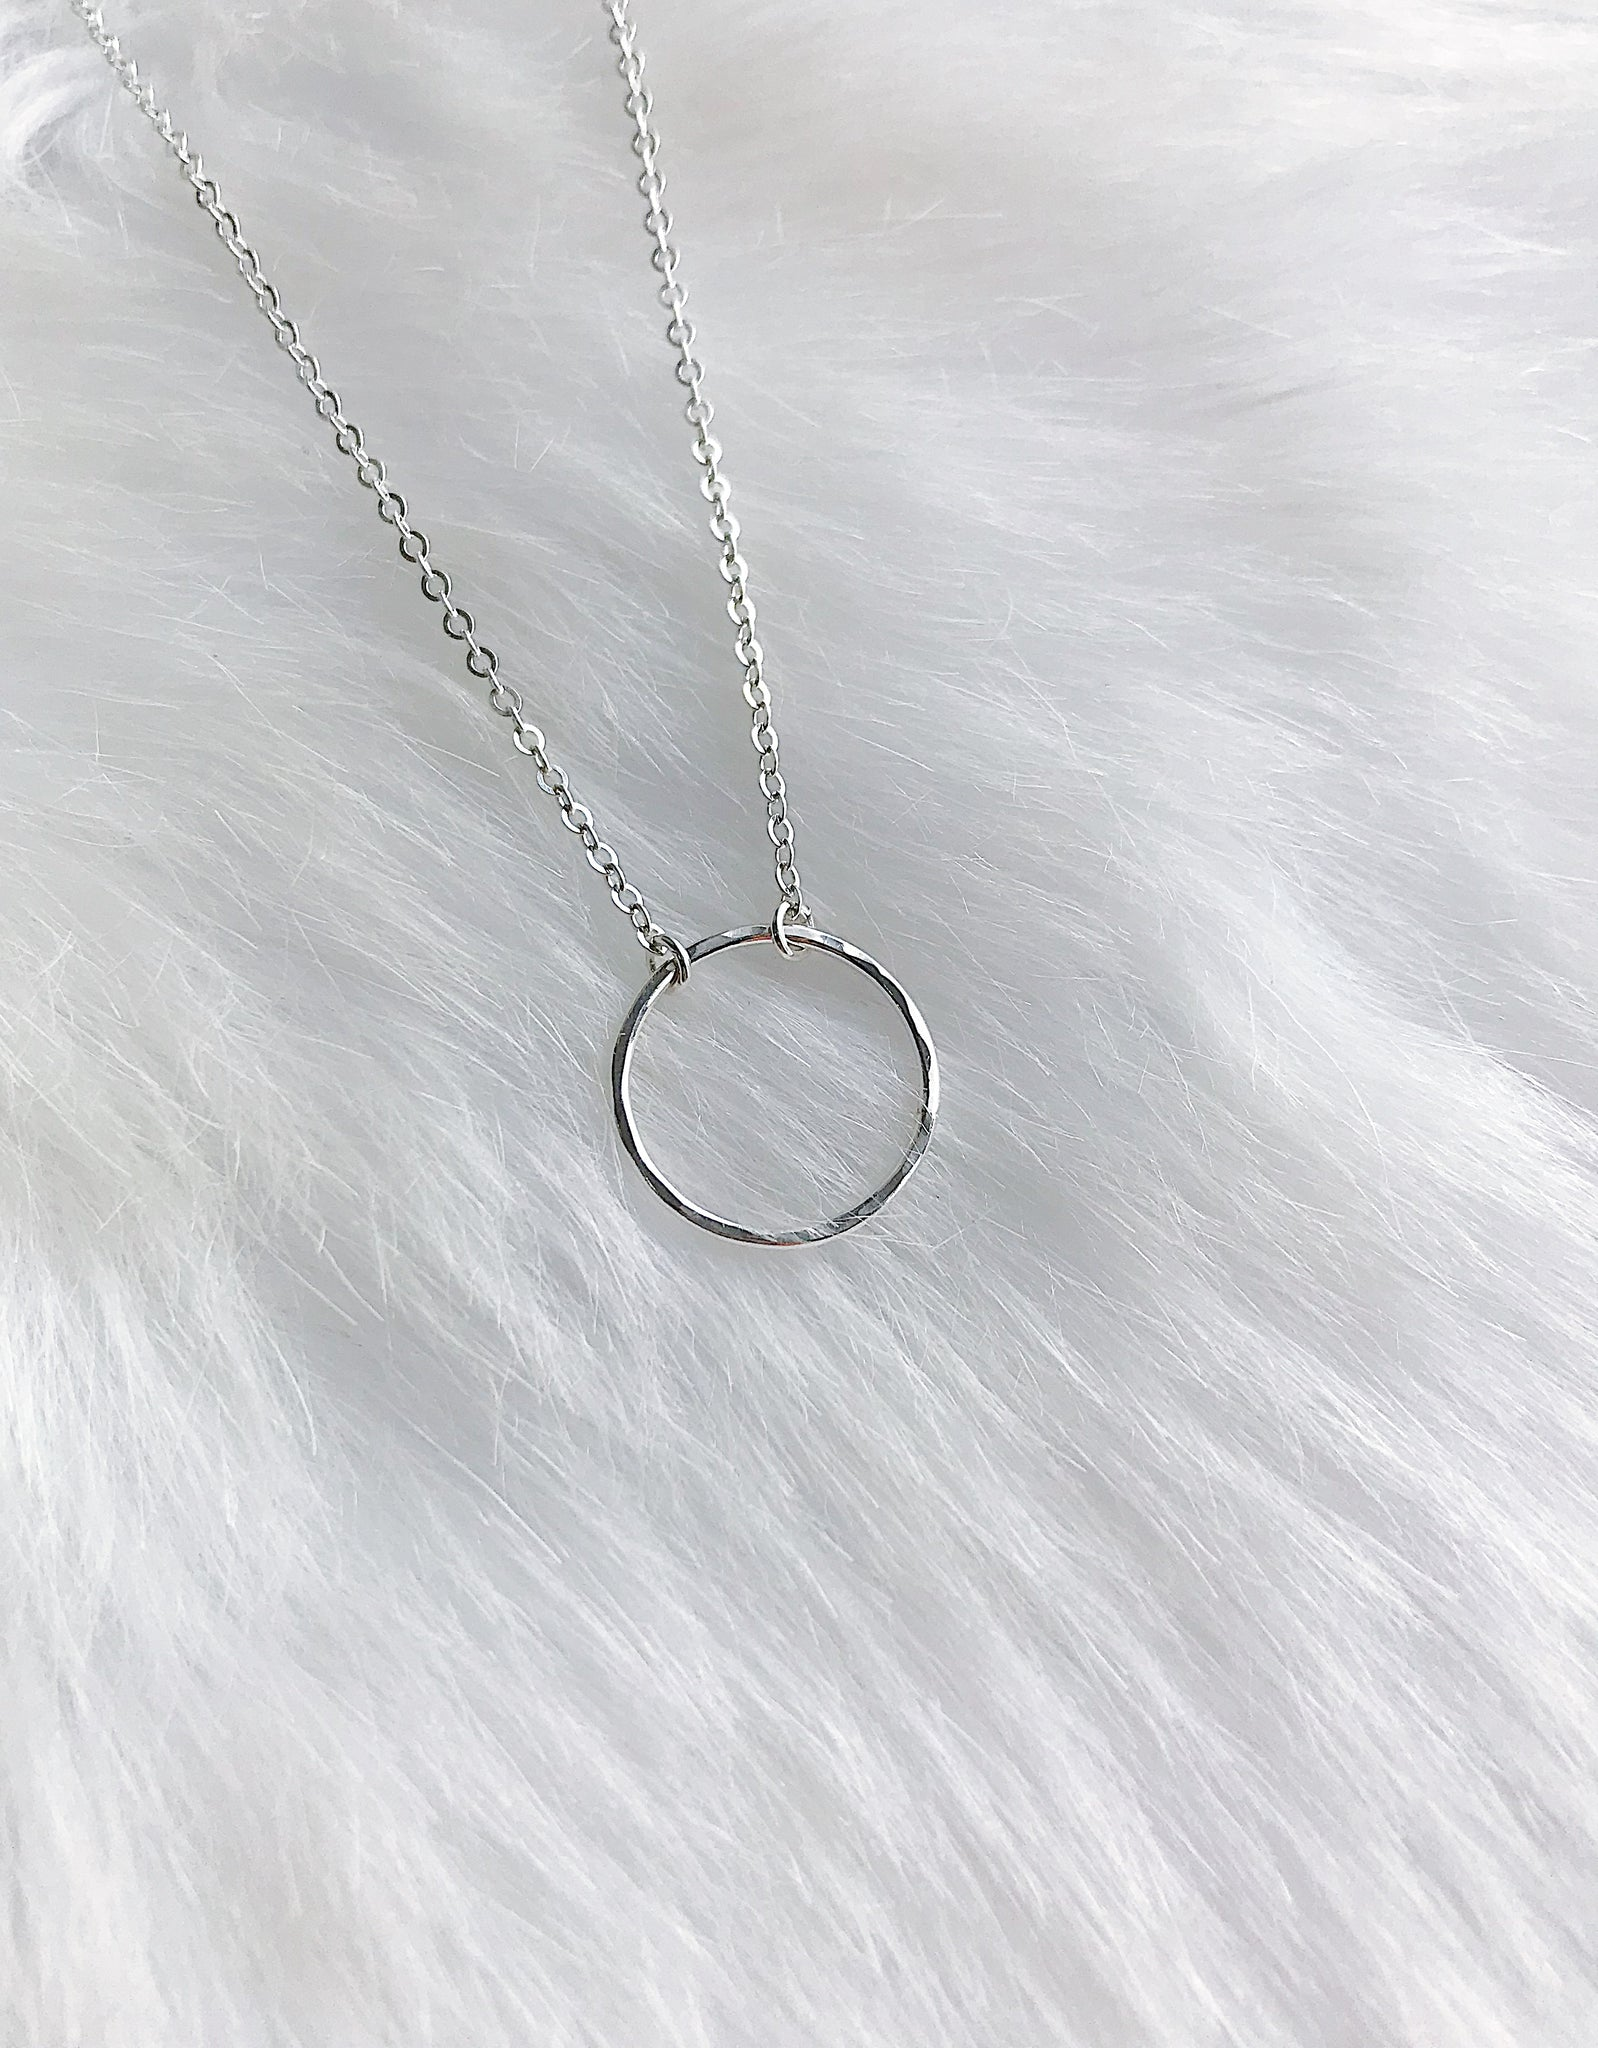 Circle Necklace - Silver